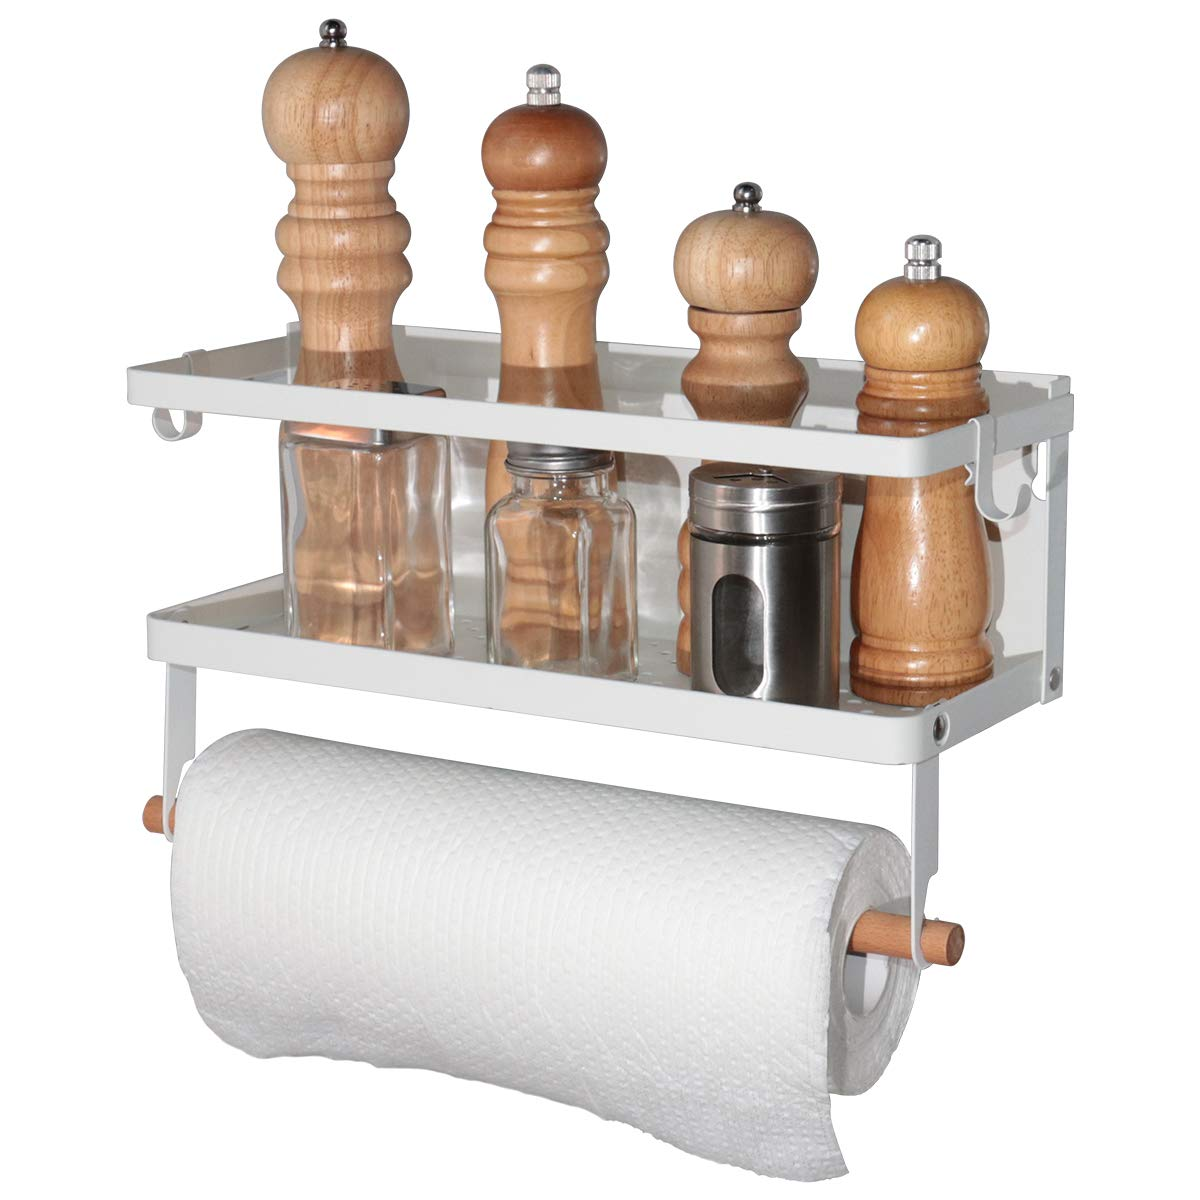 Boeray Magnetic Fridge Spice Rack Refrigerator Organizer Rack Double Tier Foldable Kitchen Magnetic Side Shelf for Storage Spices Sauce Salt Pepper Towel with Wooden Holder Hook and Screw White